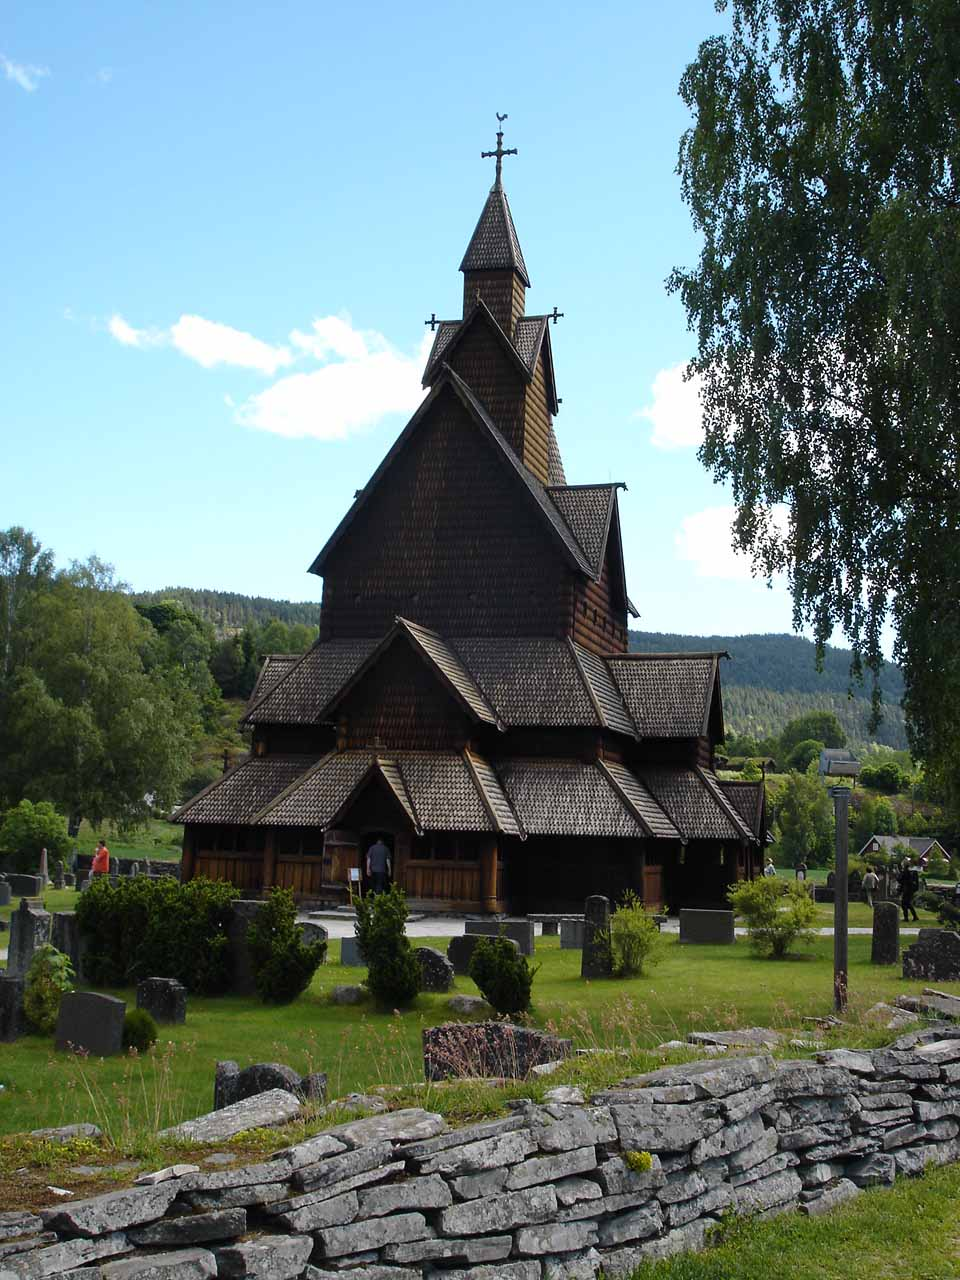 This was the Heddal Stave Church about 10km east of the E134 and Rv361 junction southeast of Rjukan.  The stave church was also about 6km west of the town of Notodden